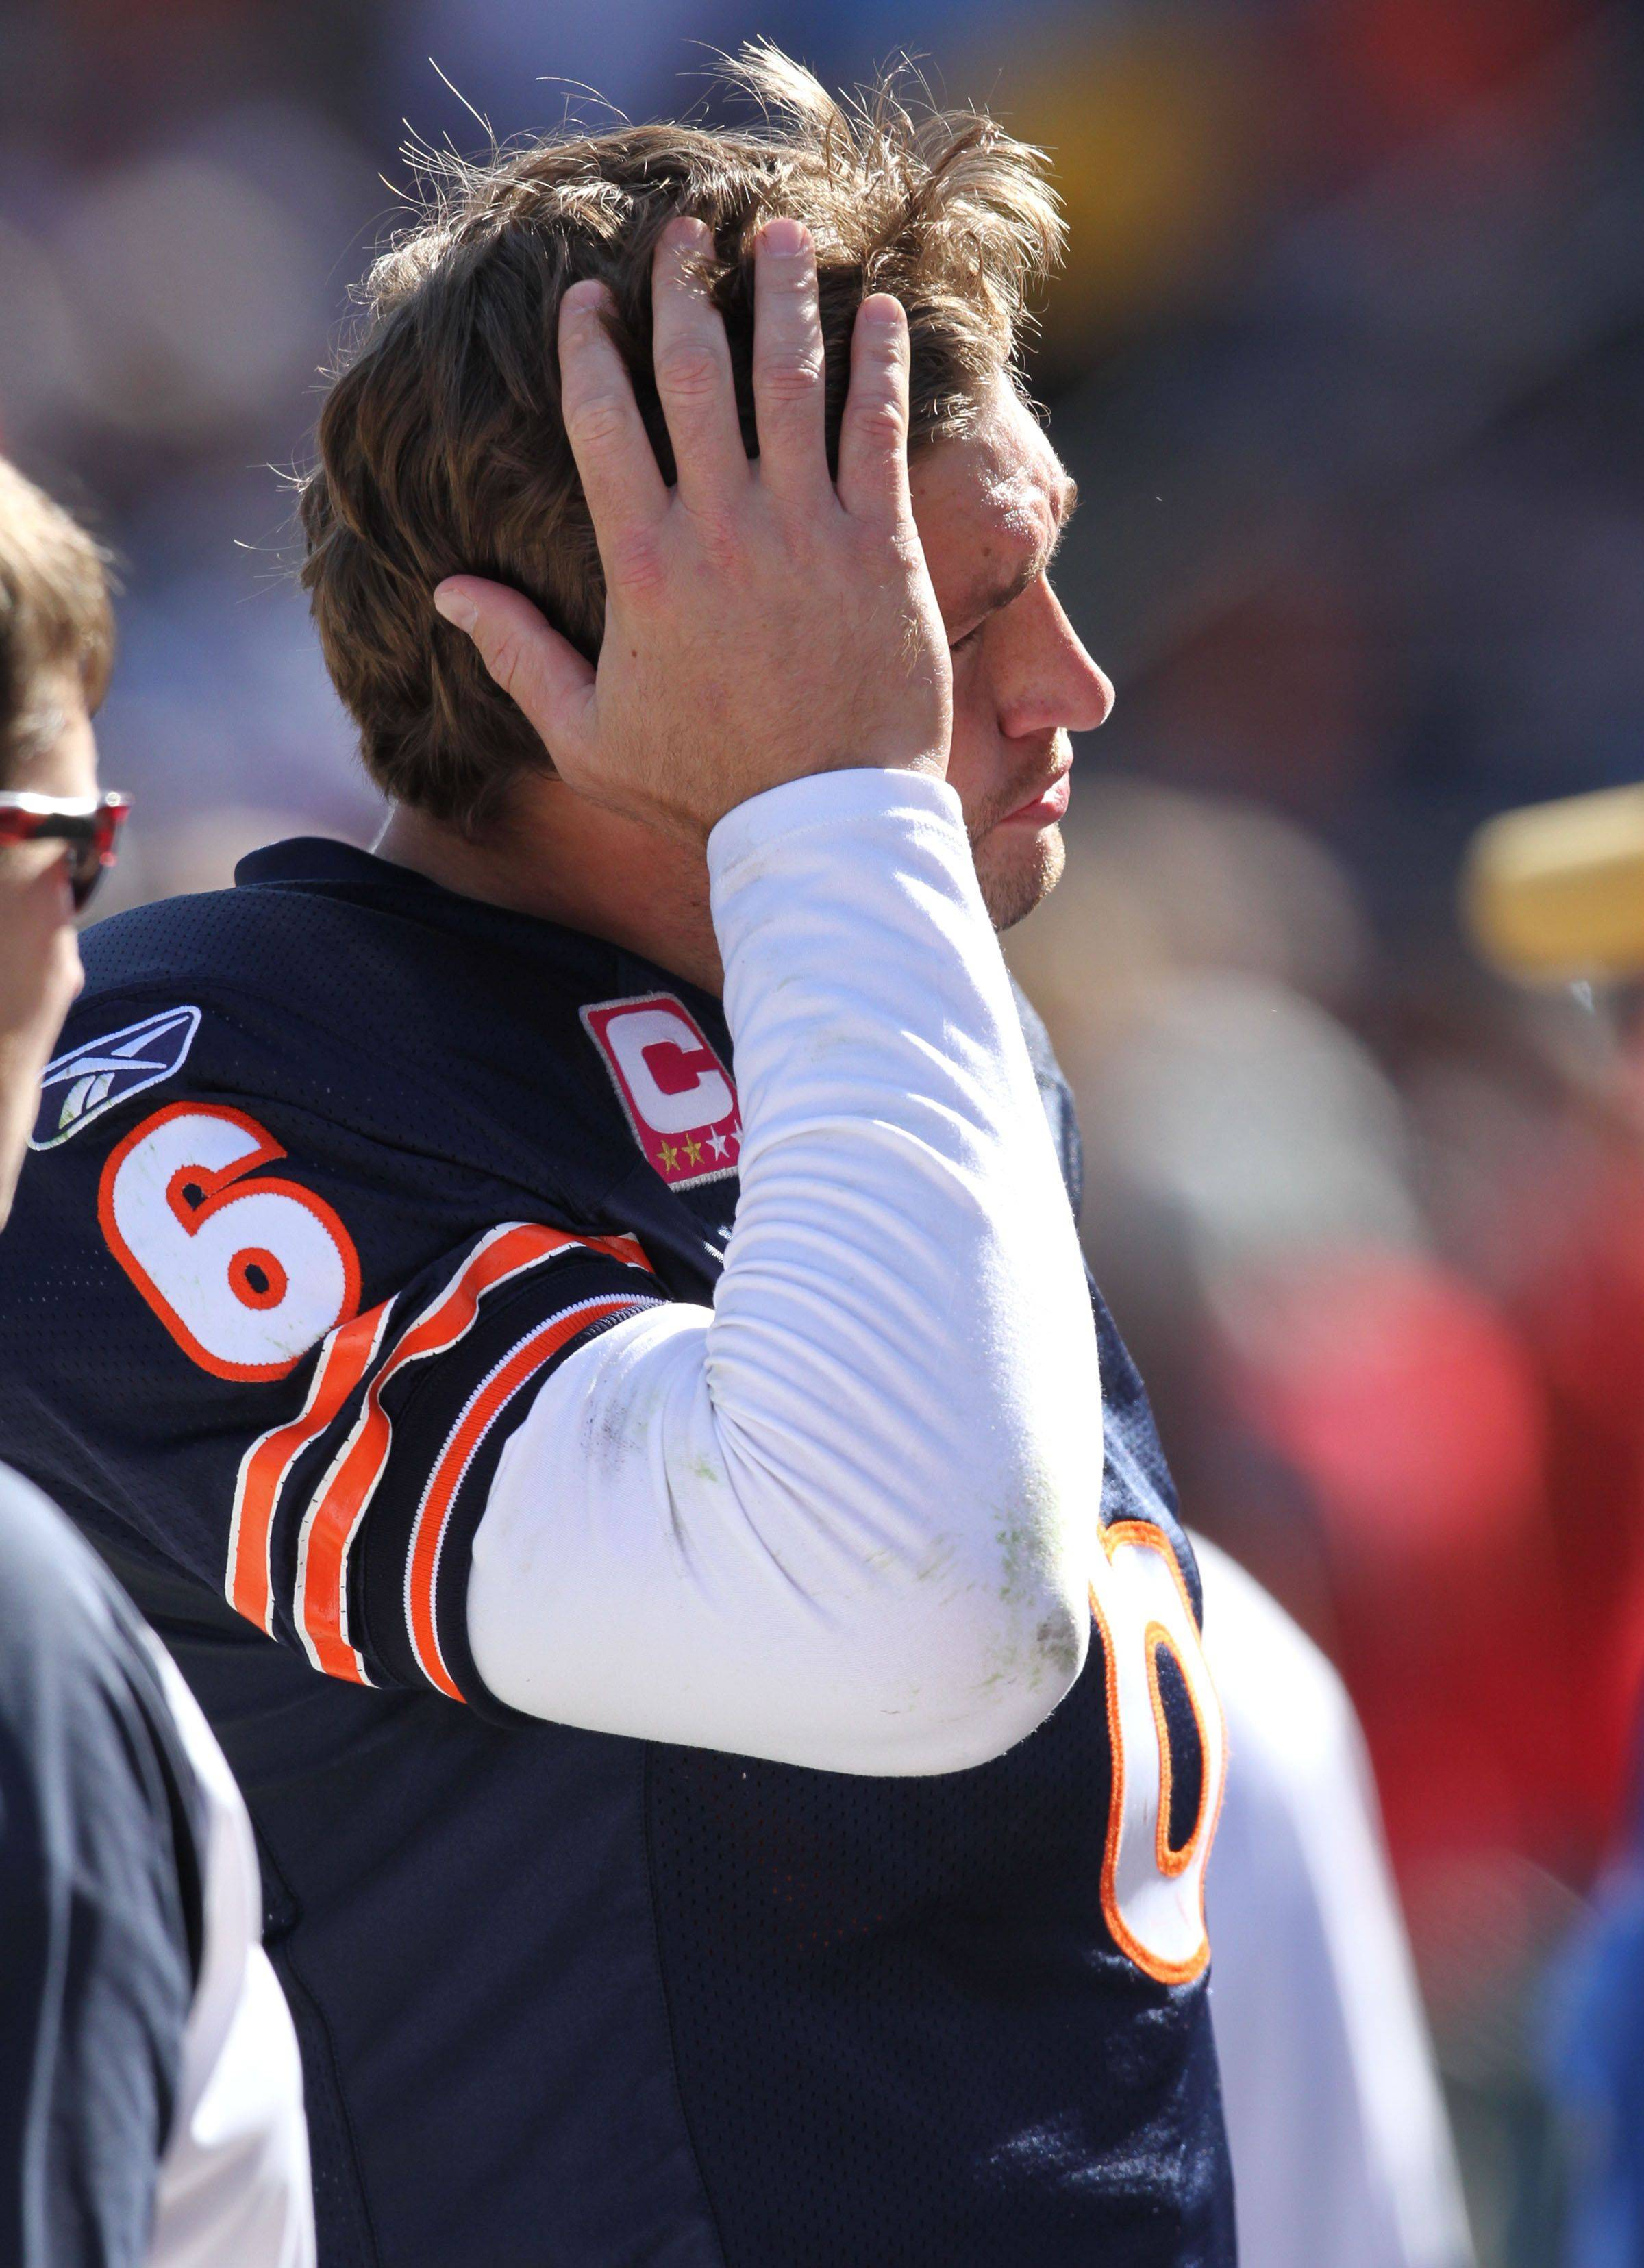 Chicago Bears' Chicago Bears quarterback Jay Cutler on side line after being sacked by Seattle Seahawks' safety Lawyer Milloy in the second half.